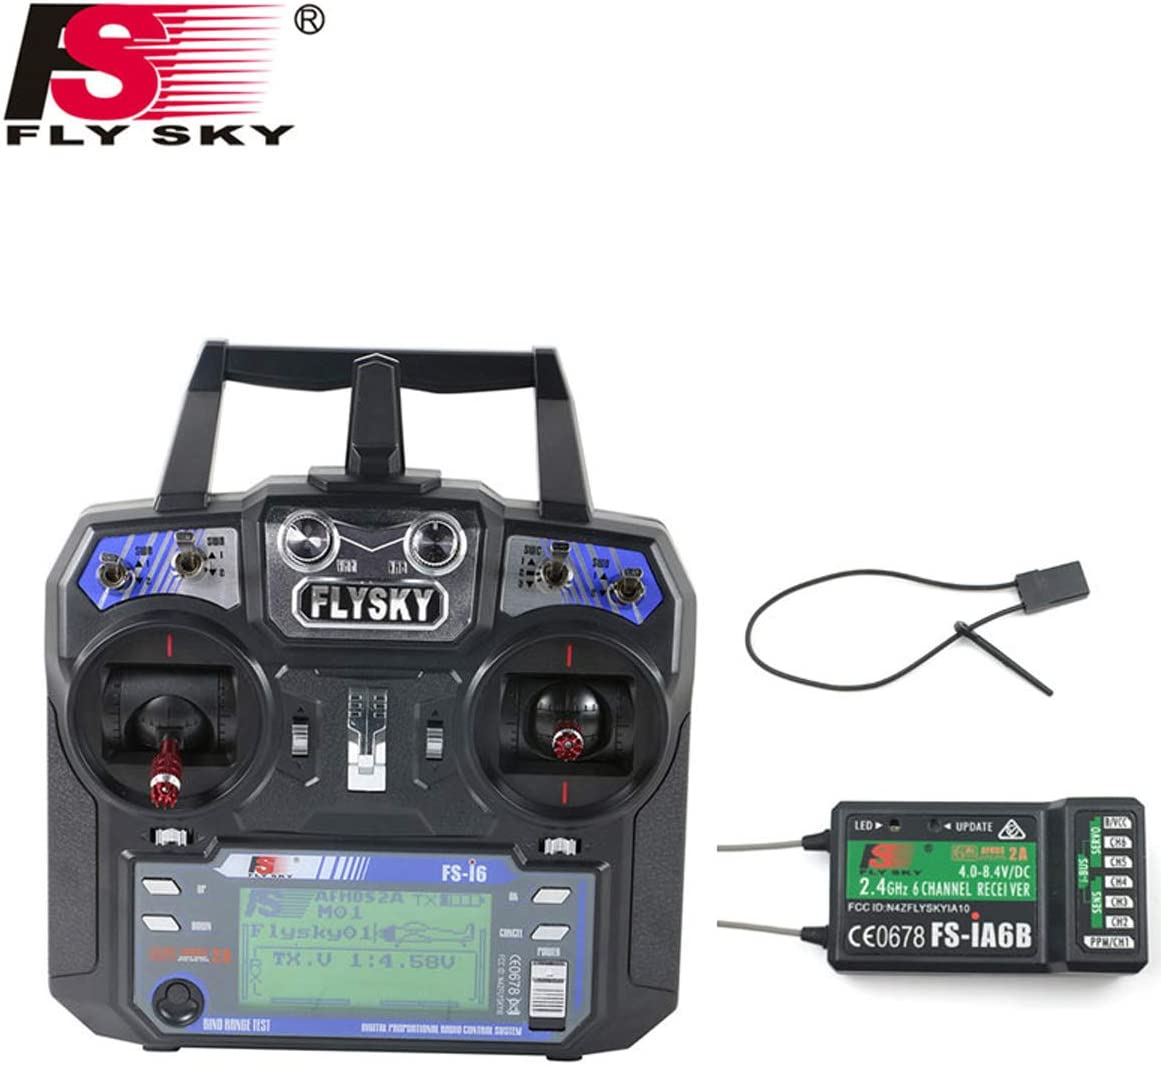 FLYSKY FS-i6X 2.4G 2A 6CH RC Transmitter With FS-iA6B Receiver For RC Quadcopter